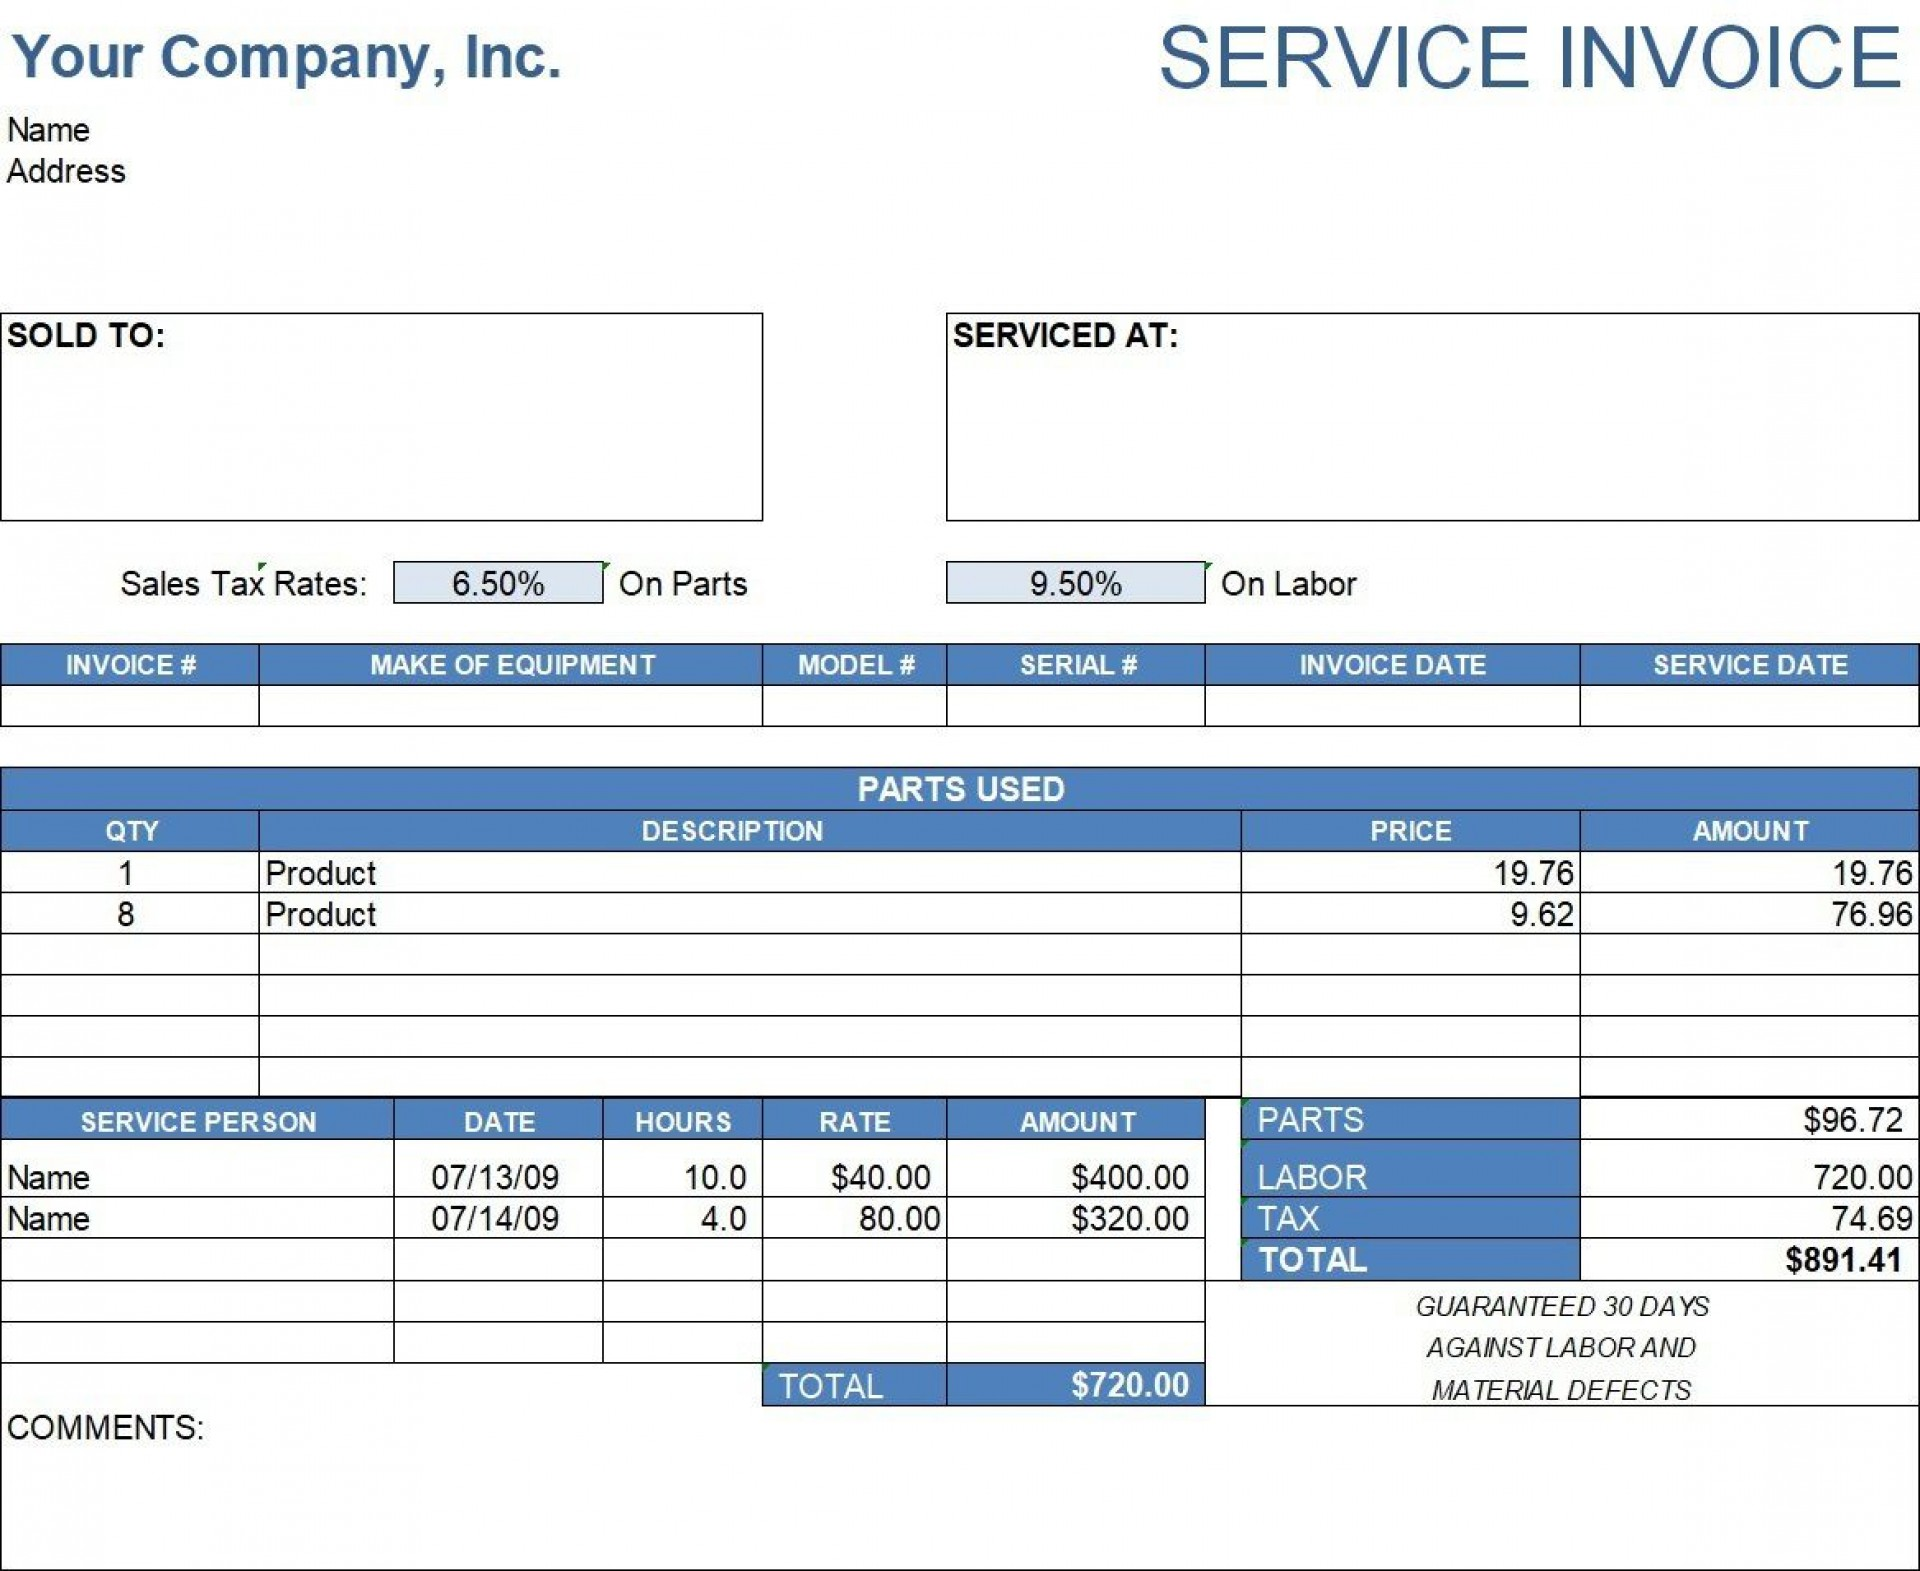 002 Remarkable Service Invoice Template Free Photo  Rendered Word Auto Download1920